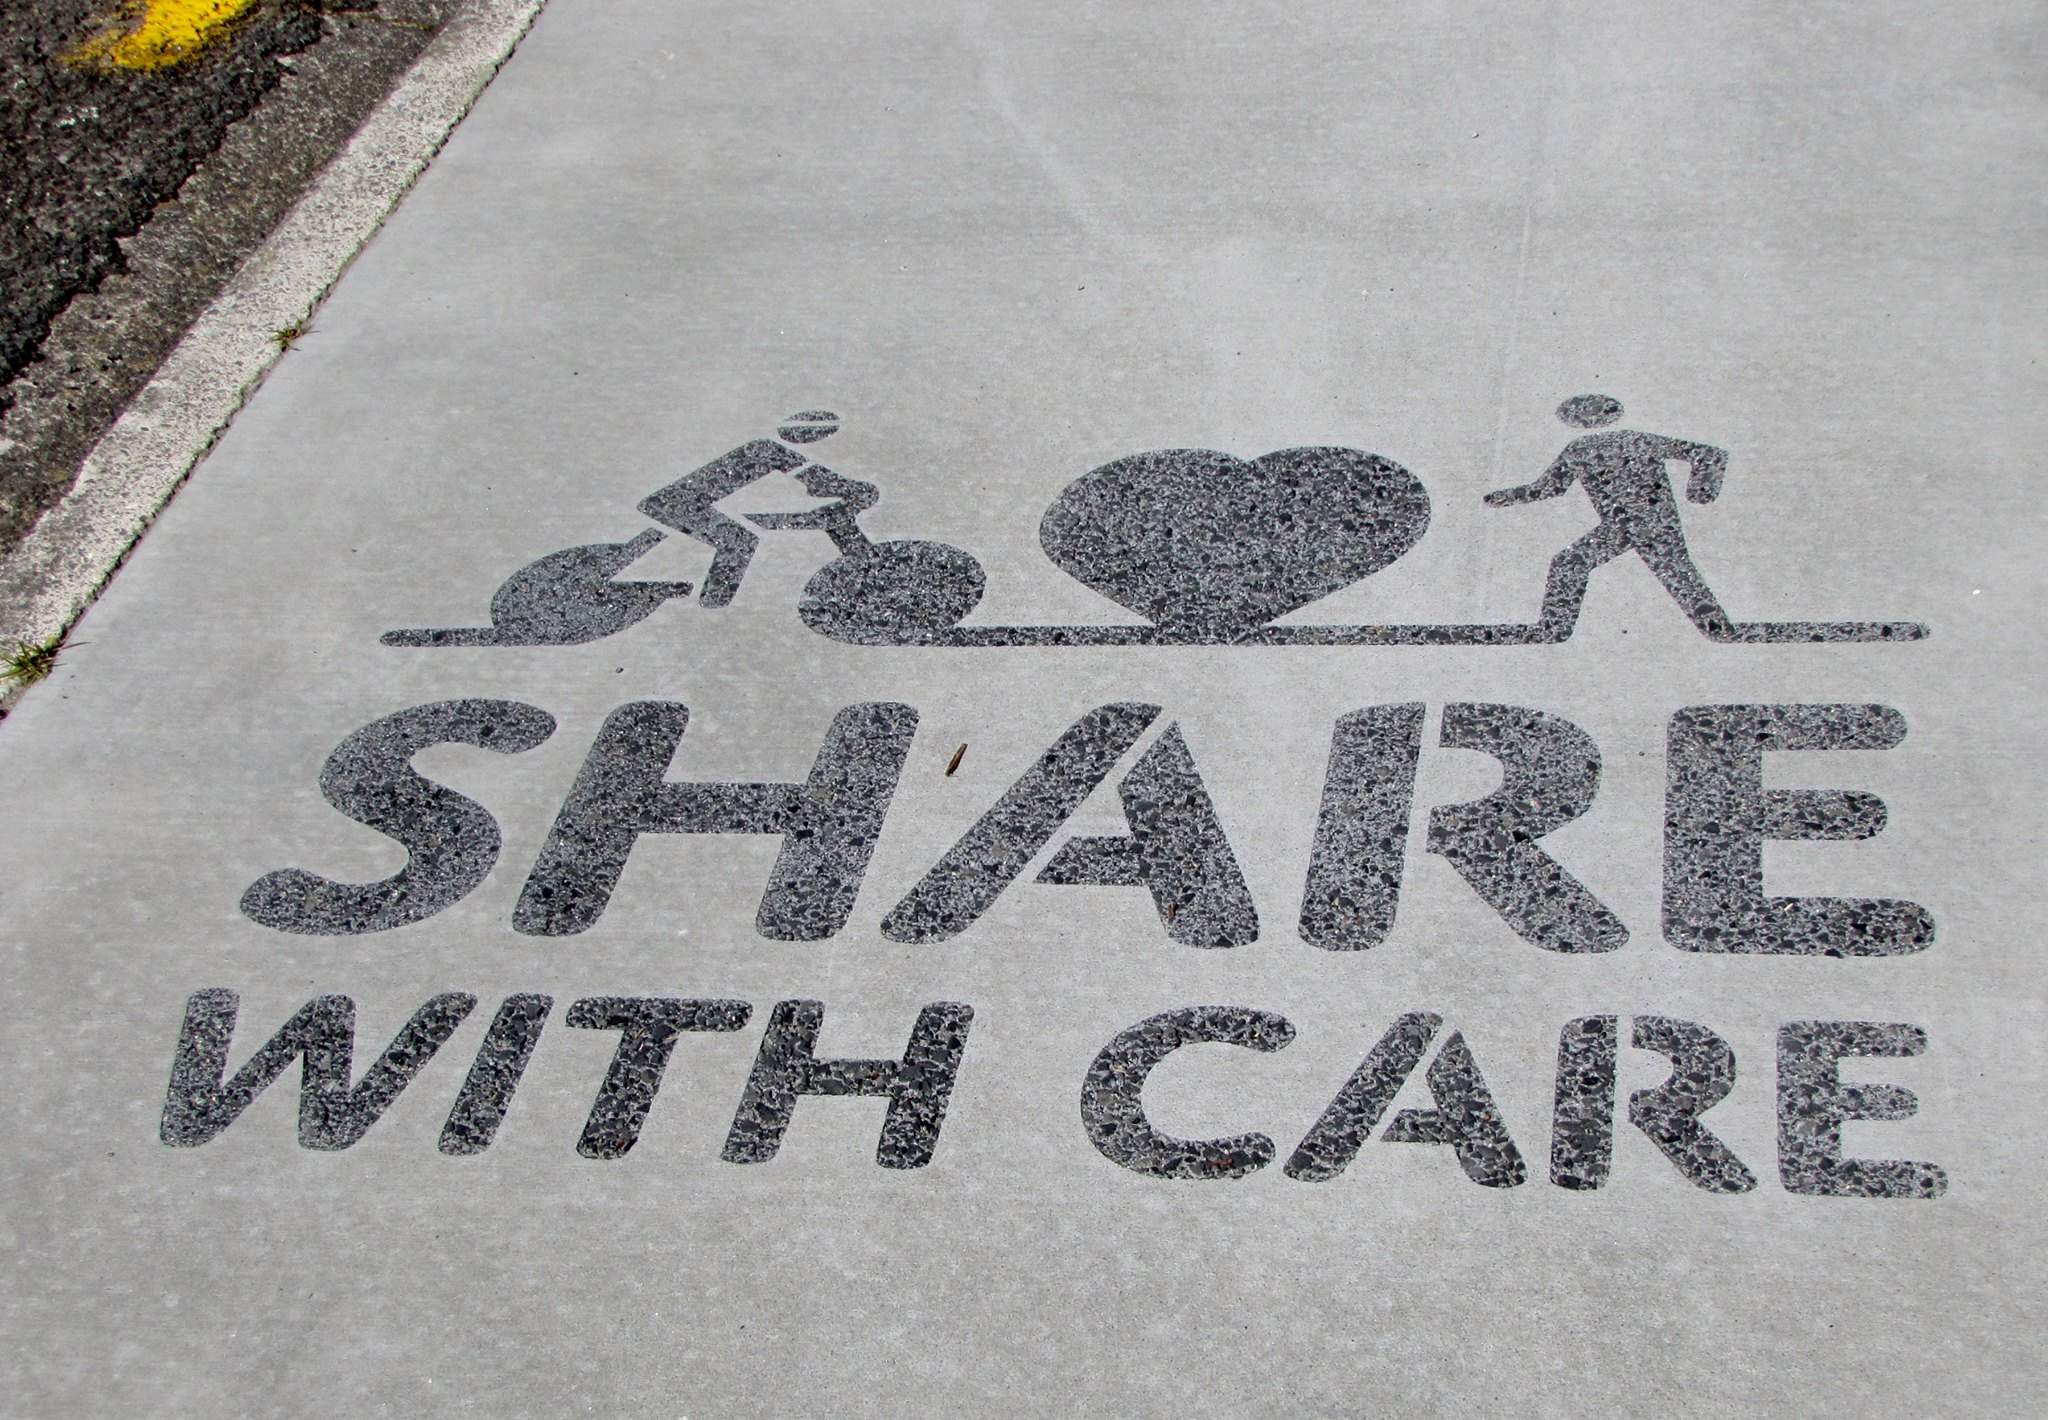 Share with care stencil photo